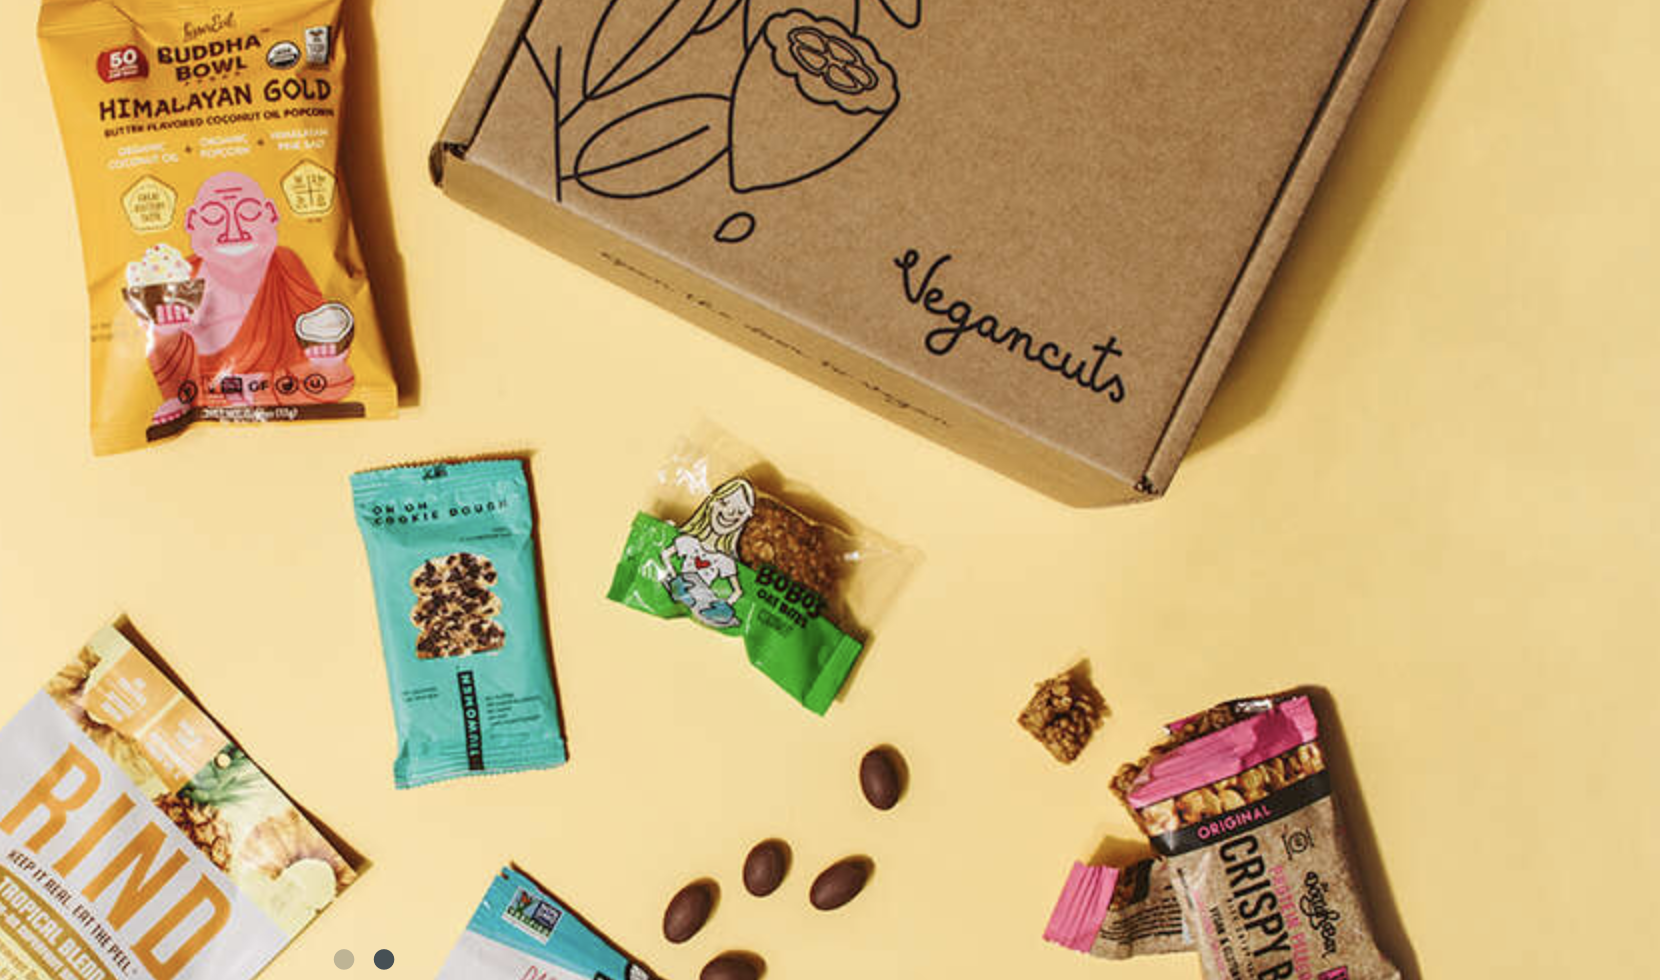 A Vegan cuts subscription box next to assorted vegan popcorn and snack bars